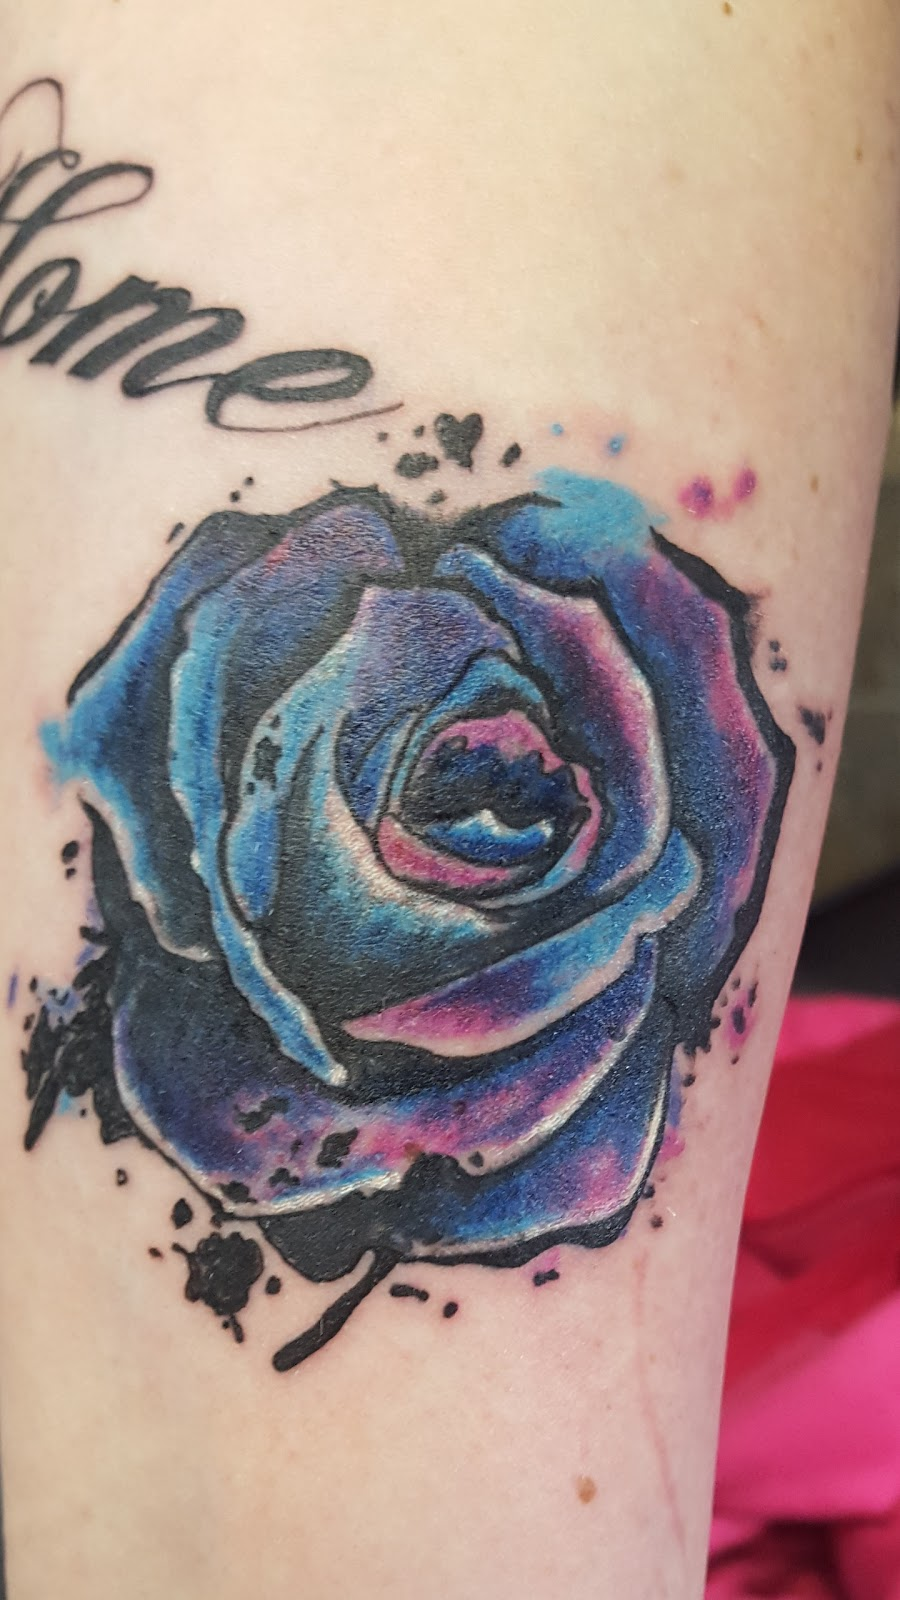 Exquisite Tattoo Studio | store | 7709 S Brockway Rd, Yale, MI 48097, USA | 8103879594 OR +1 810-387-9594